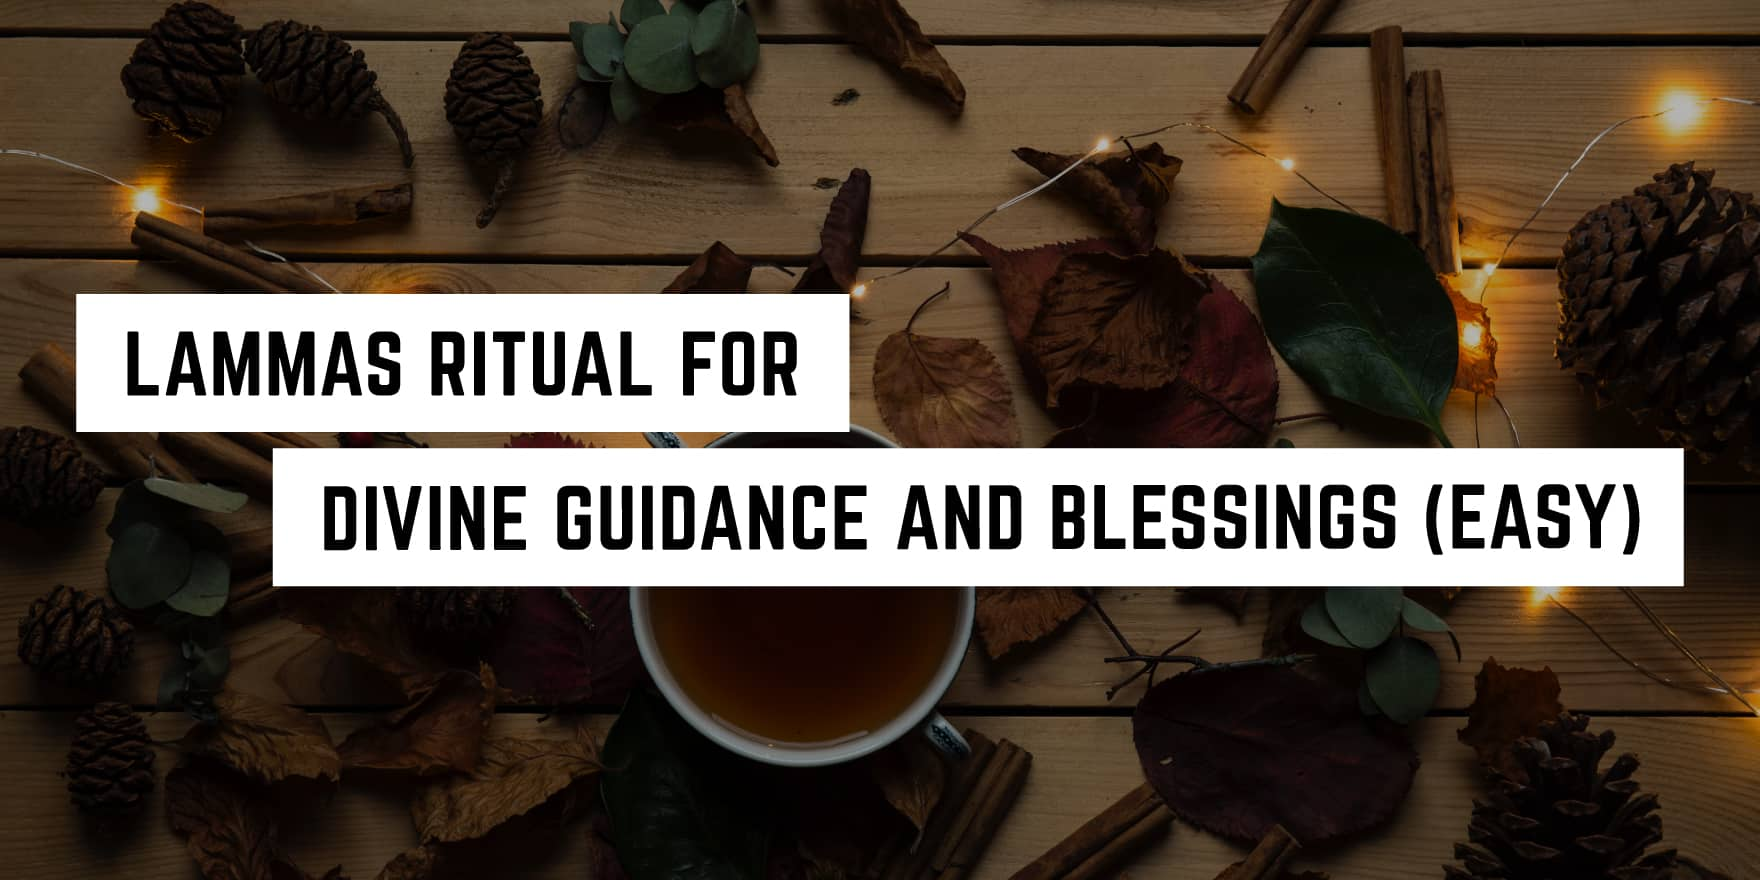 Easy Lammas Ritual For Divine Guidance And Blessings